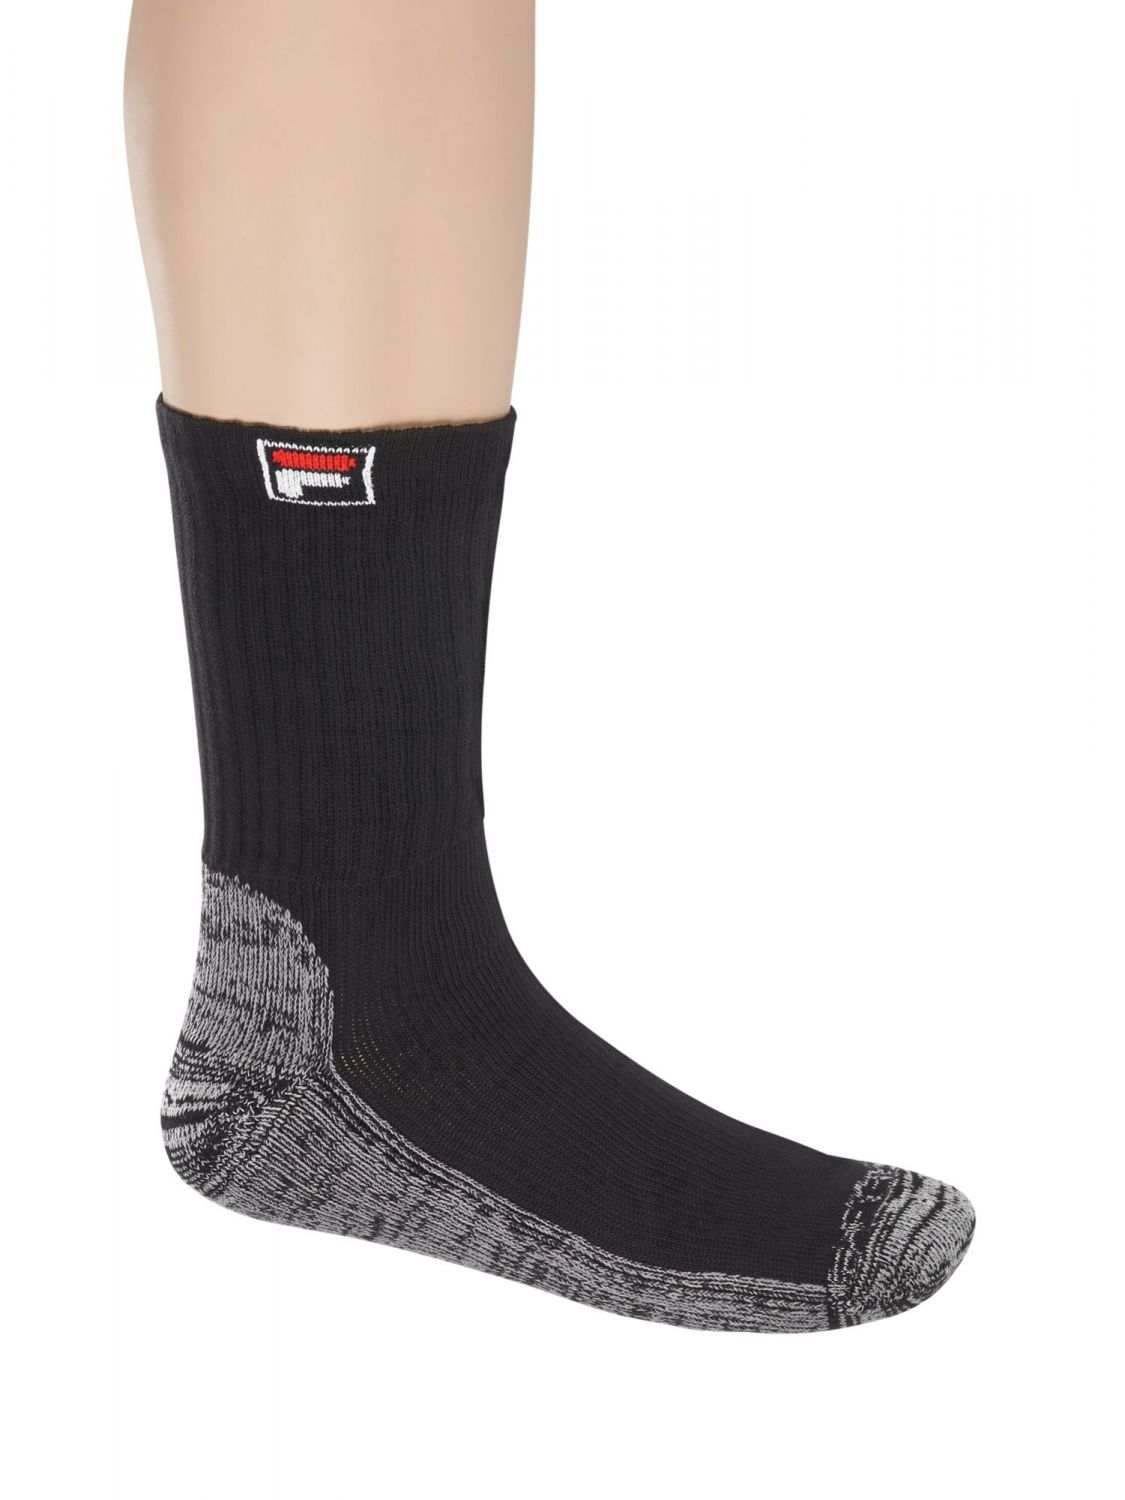 fila tennissocken 00014201418528 schwarz fila germany. Black Bedroom Furniture Sets. Home Design Ideas